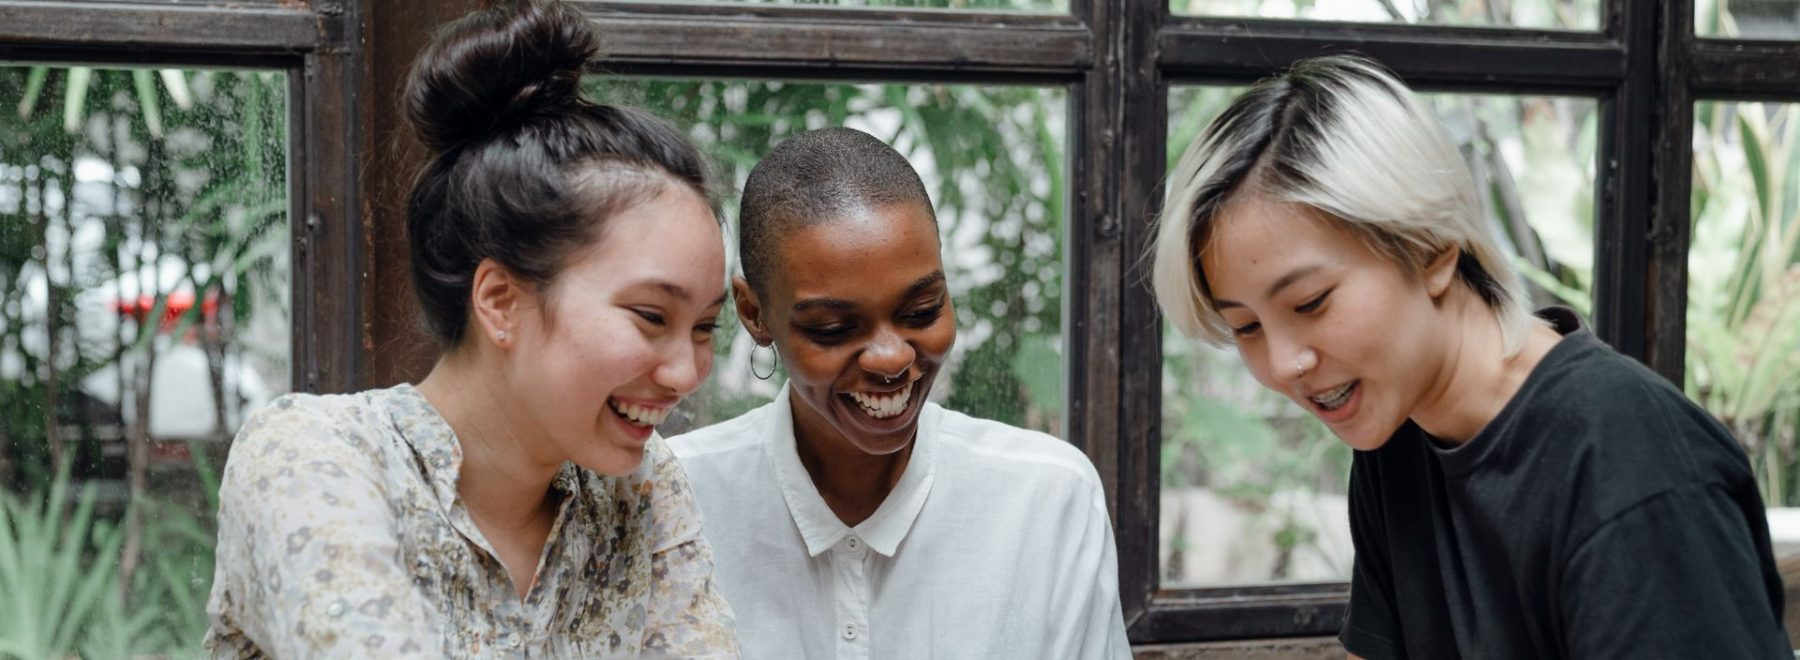 Three students in a coffee shop laughing